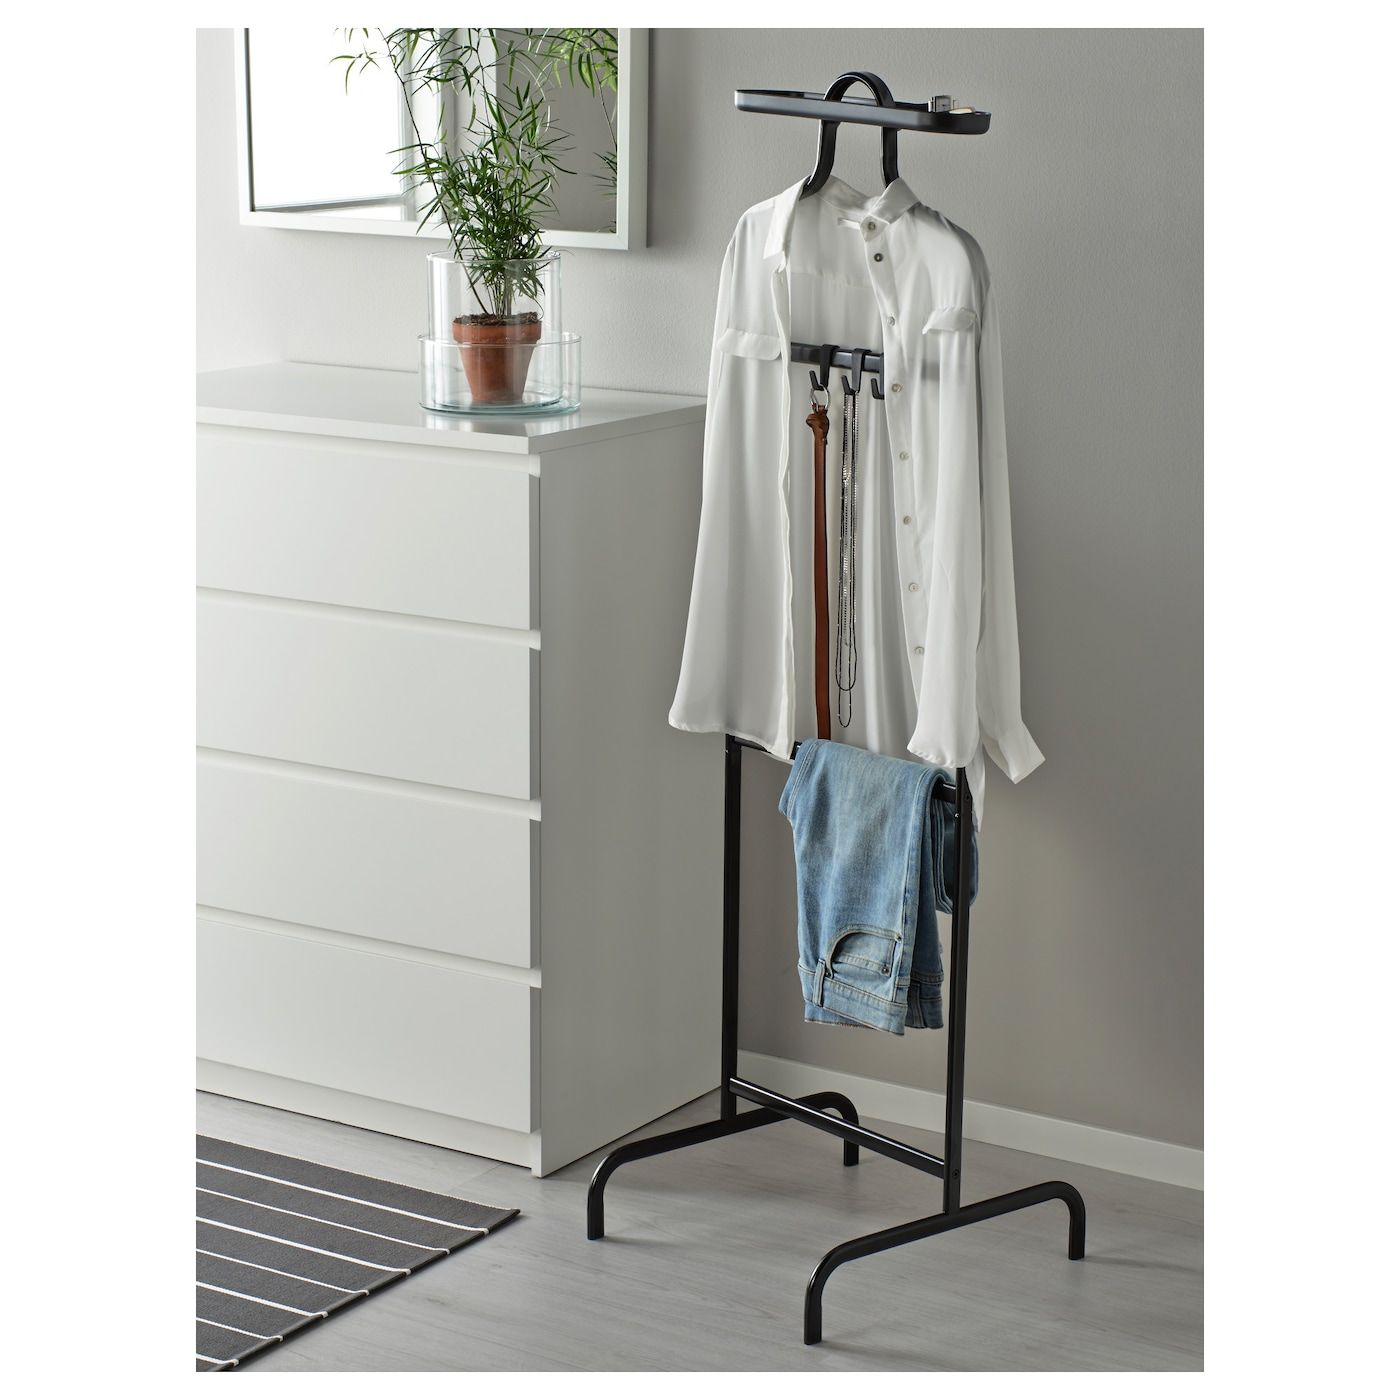 IKEA MULIG valet stand Can be mounted at two different heights.